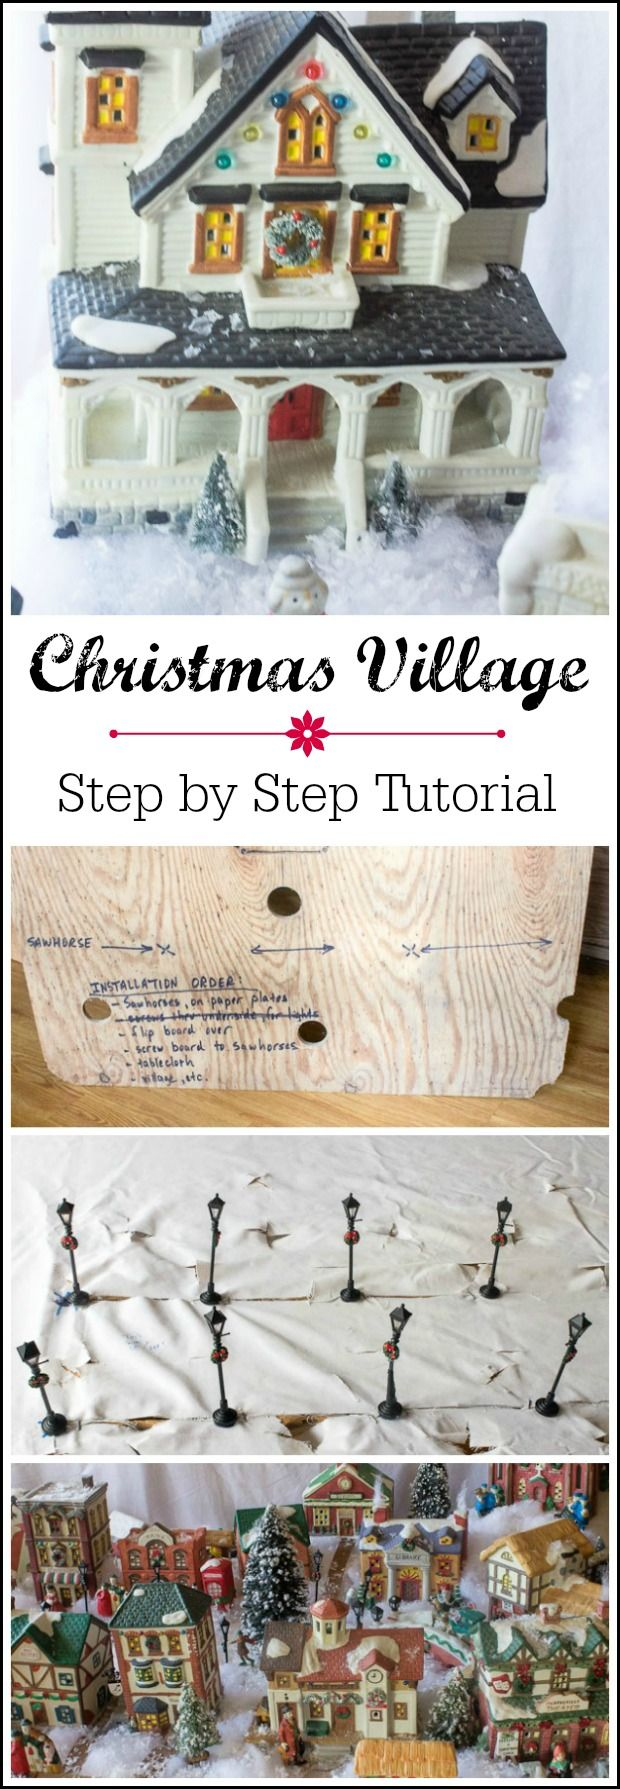 How to Create a Christmas Village Display Tutorial | DECORATING ...